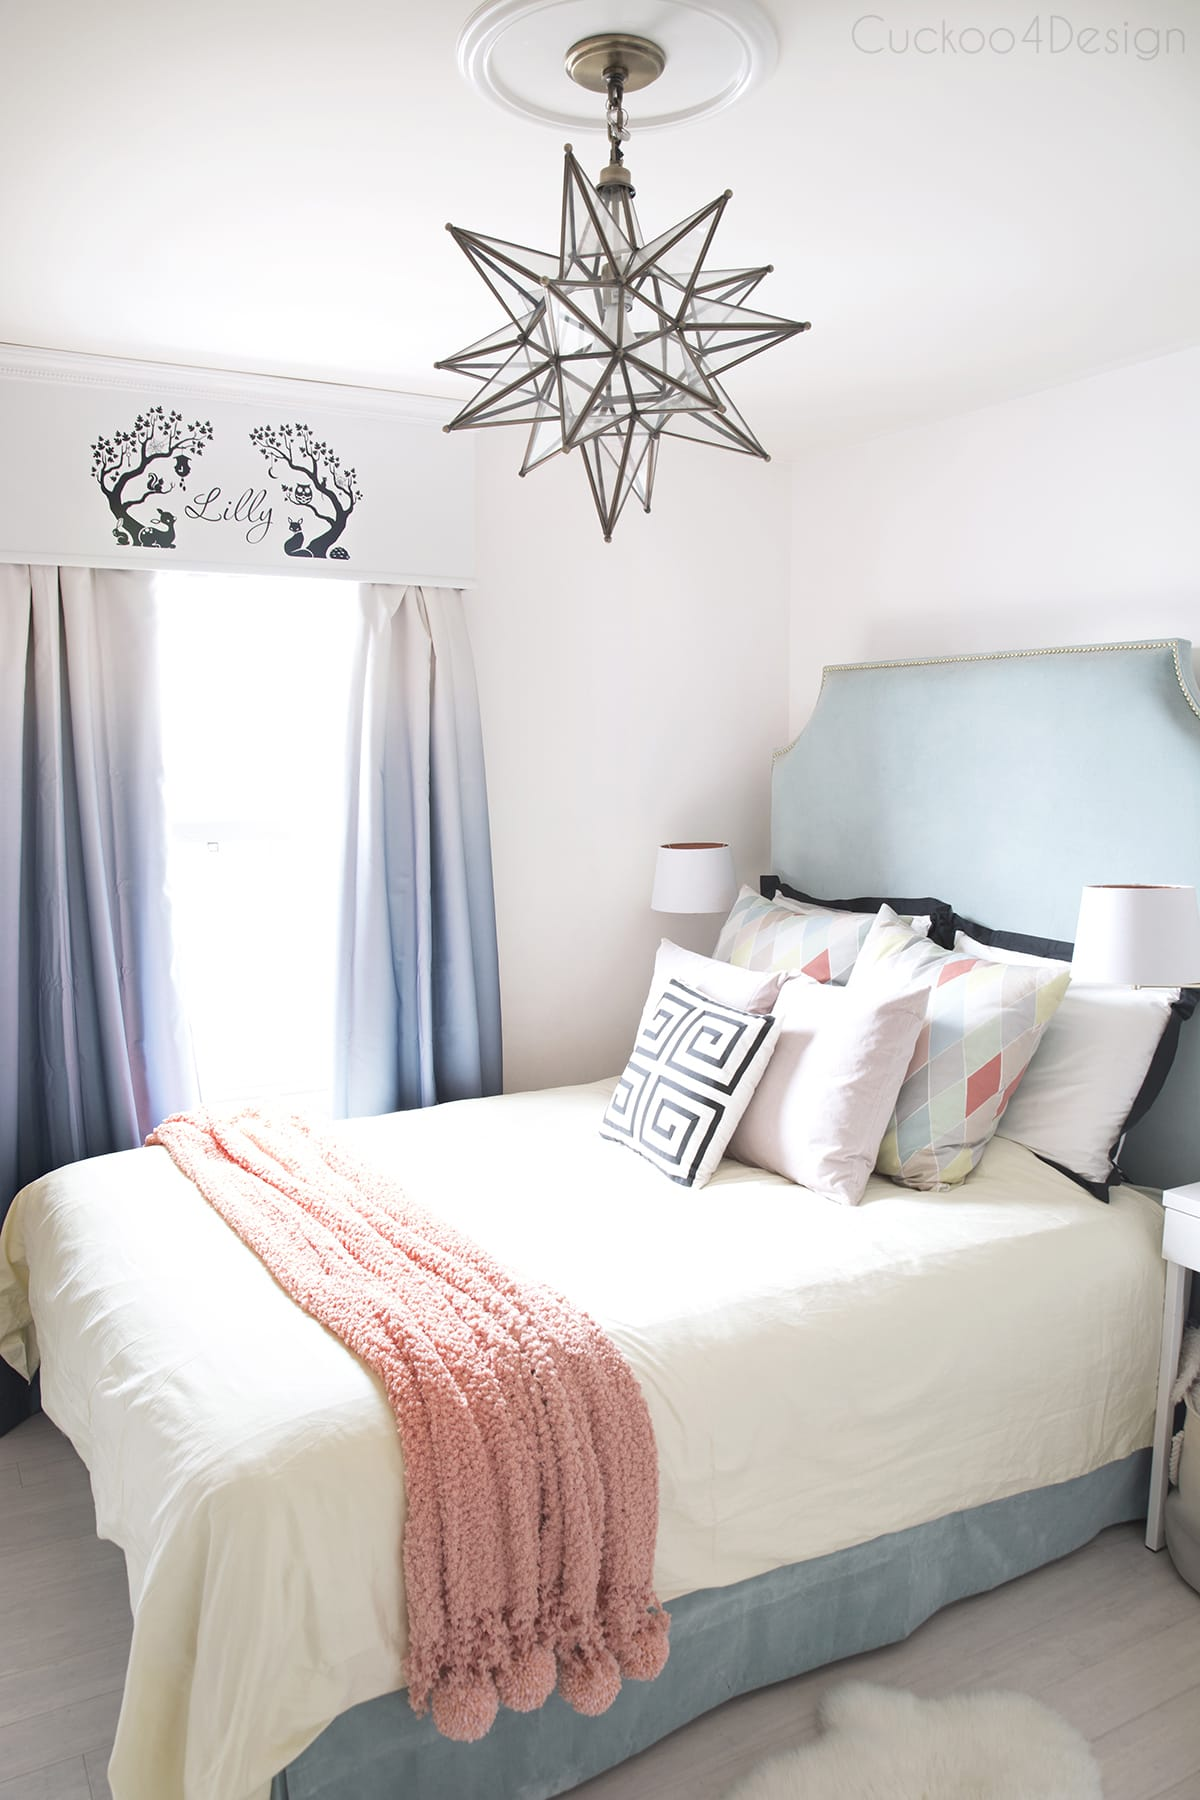 Teal turquoise coral and yellow girls bedroom